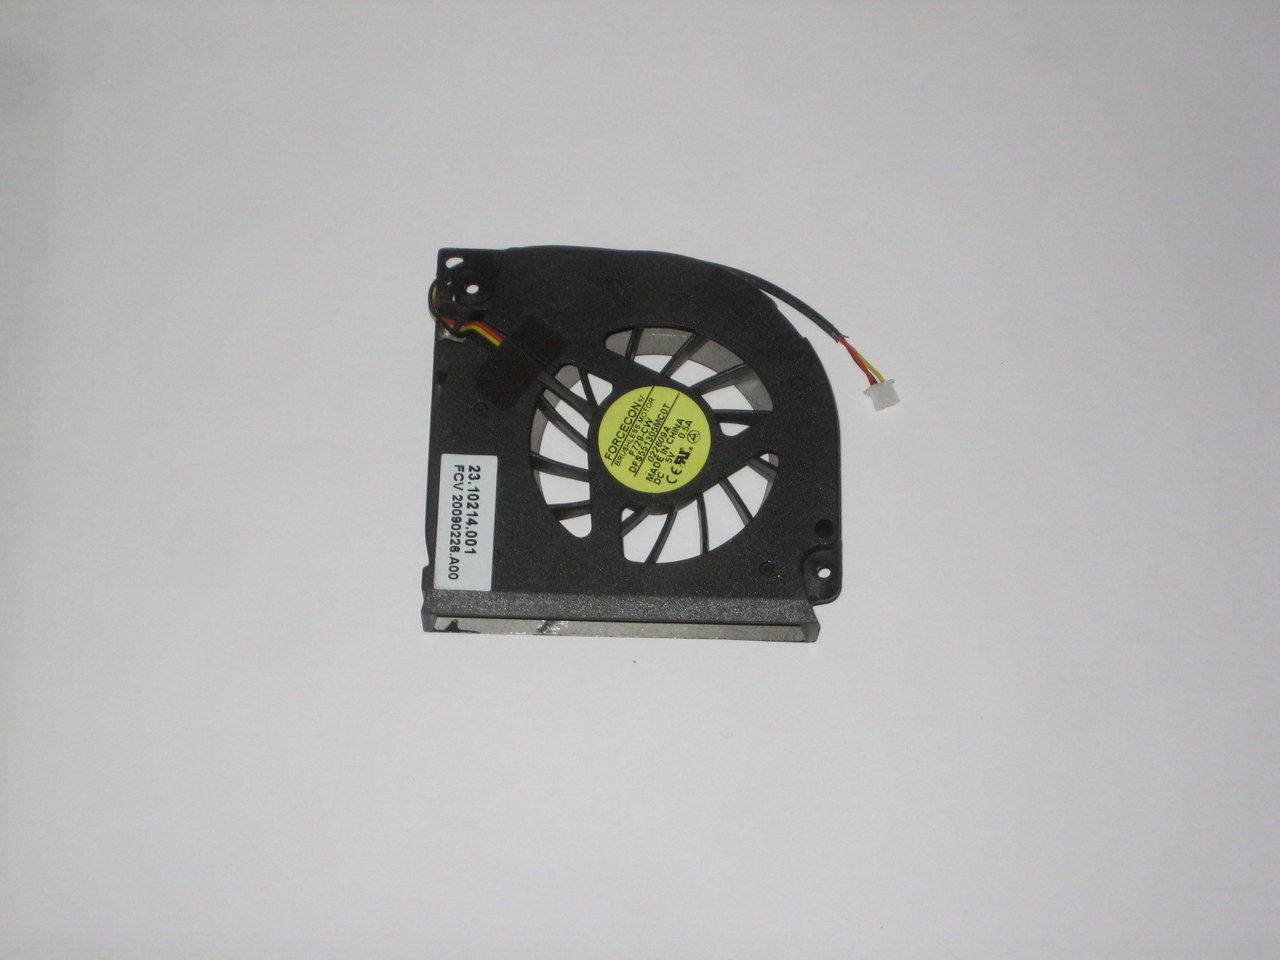 Forcecon F729-CW DFS551305MC0T Cooling FAN ACER DELL Fujitsu